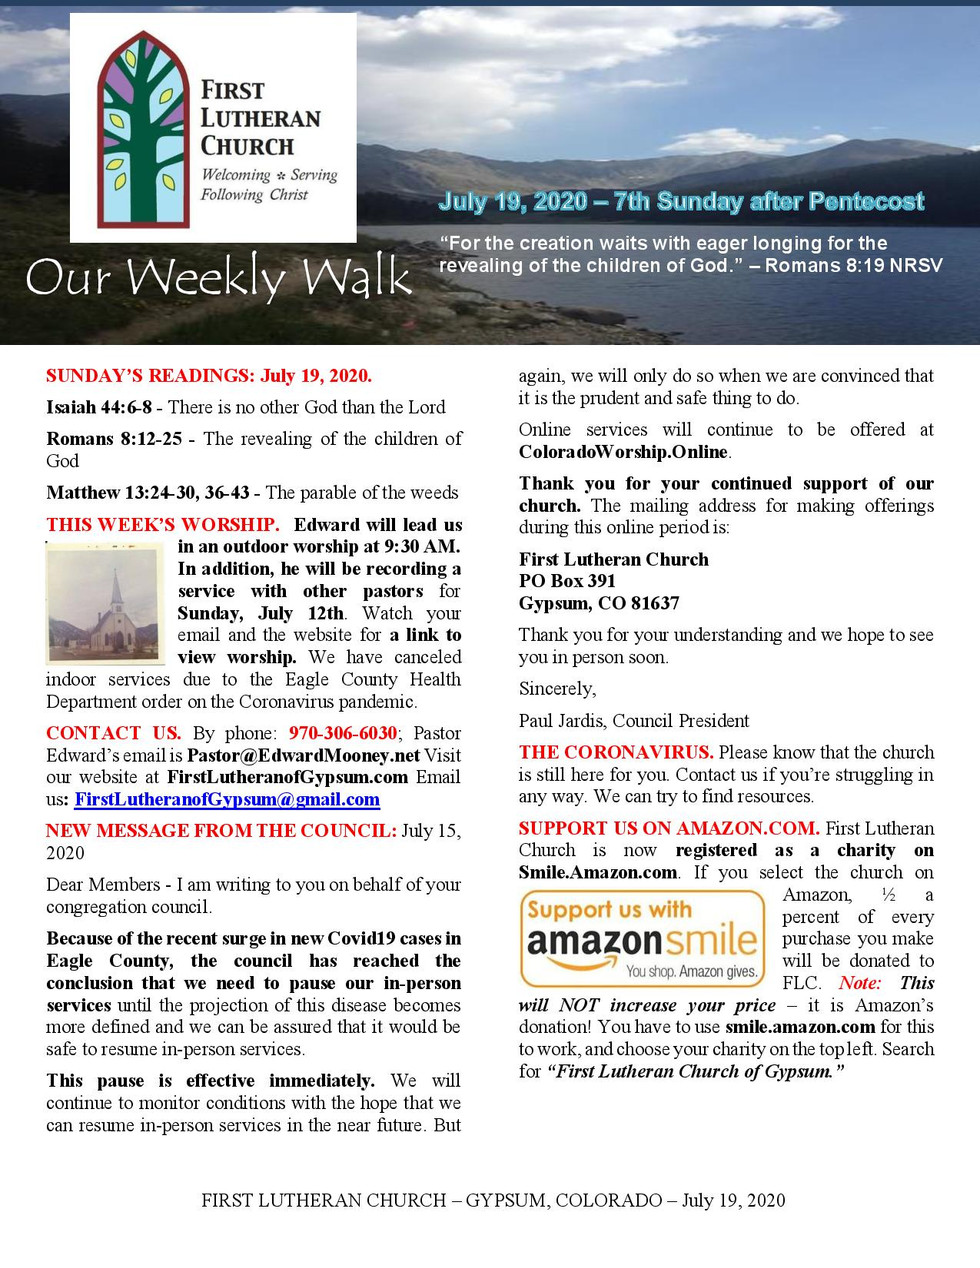 Newsletter, July 19, 2020, page 1